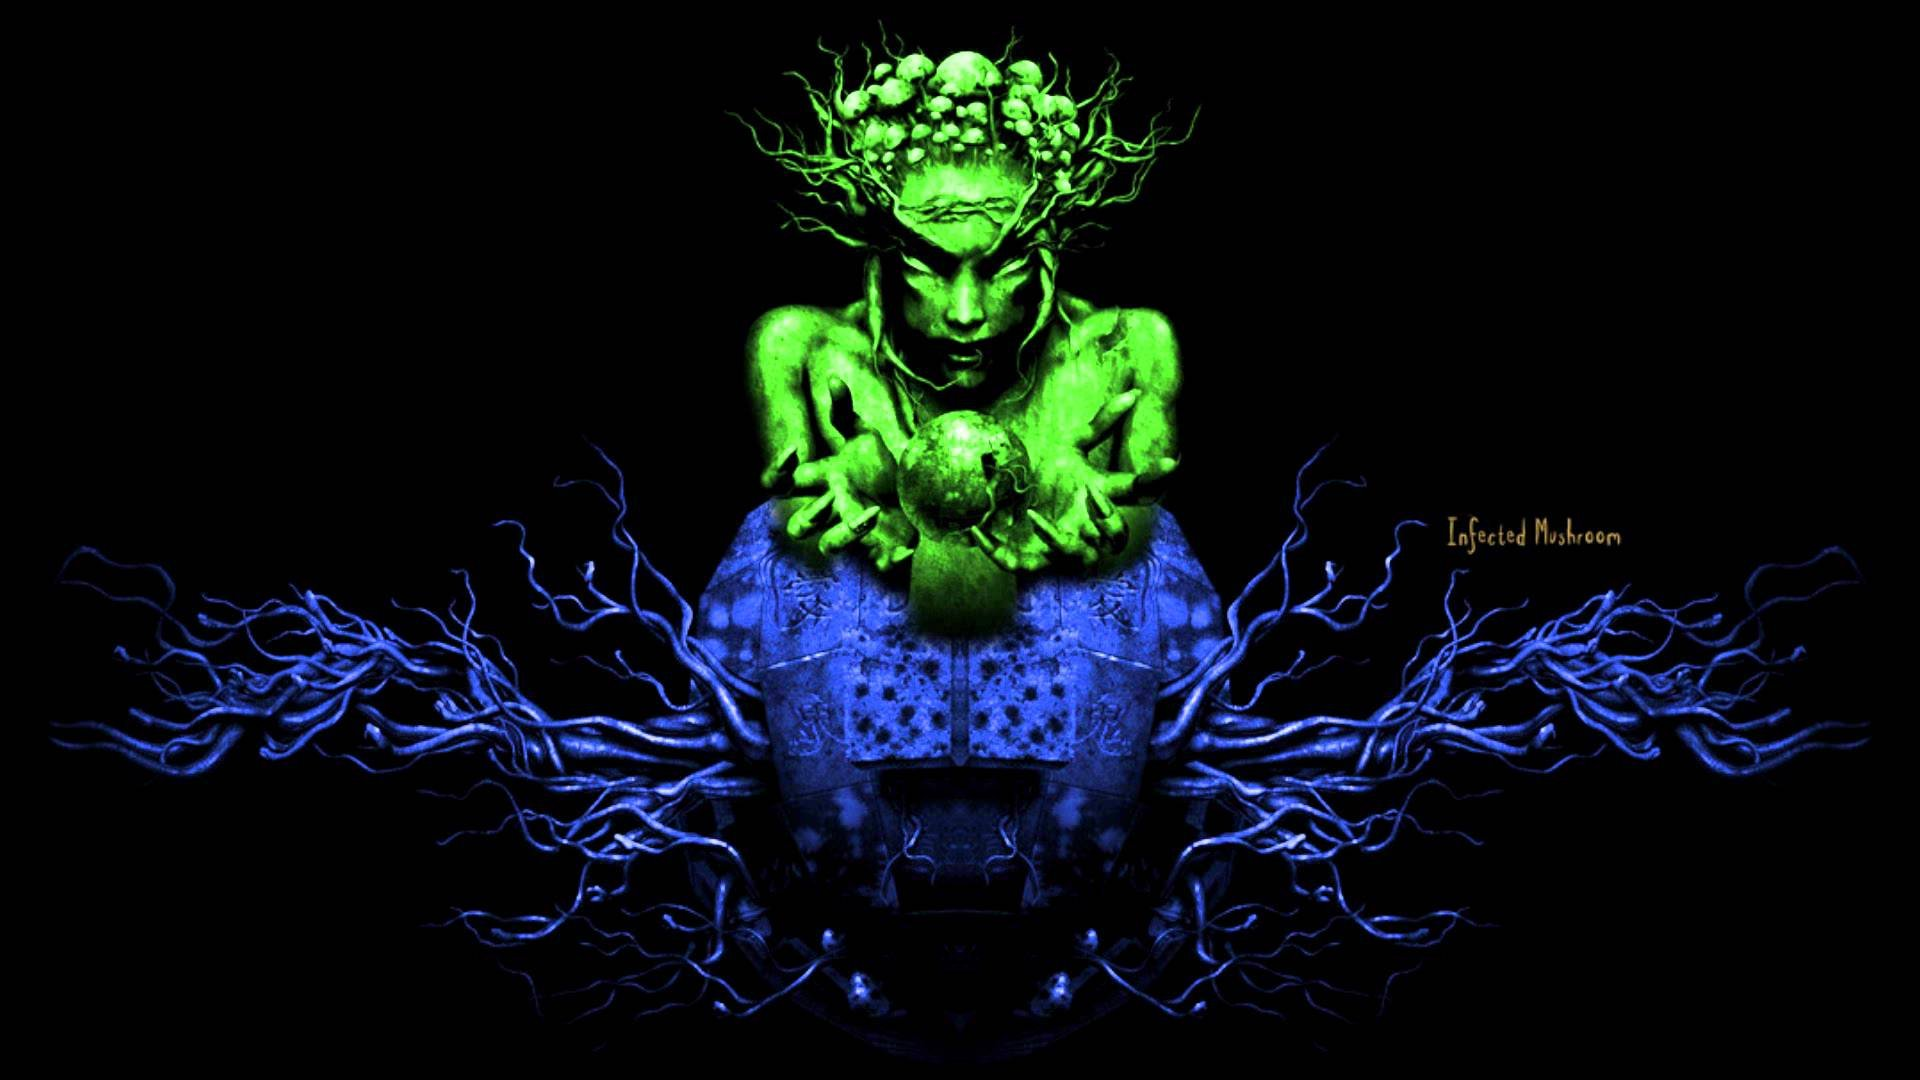 INFECTED MUSHROOM psychedelic trance electro house electronica electronic rock industrial disc jockey 1imush artwork fantasy